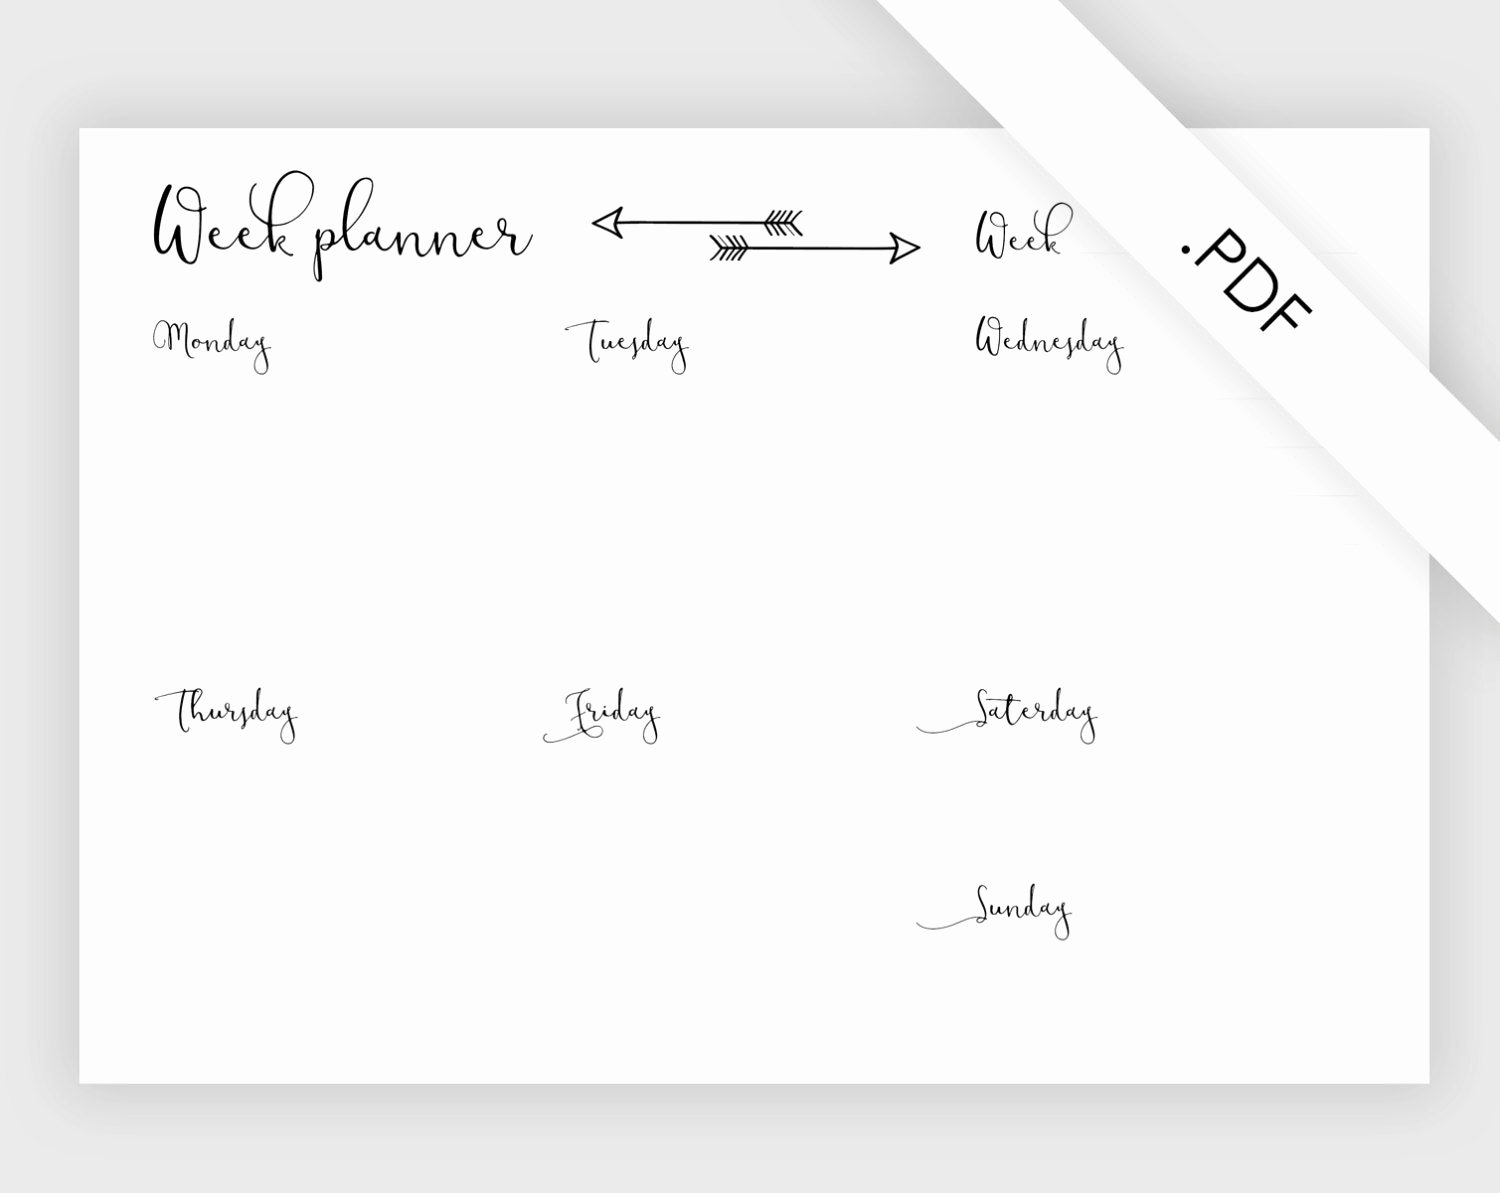 Week at A Glance Templates Best Of Week Planner On One Page Template Printable Week at A